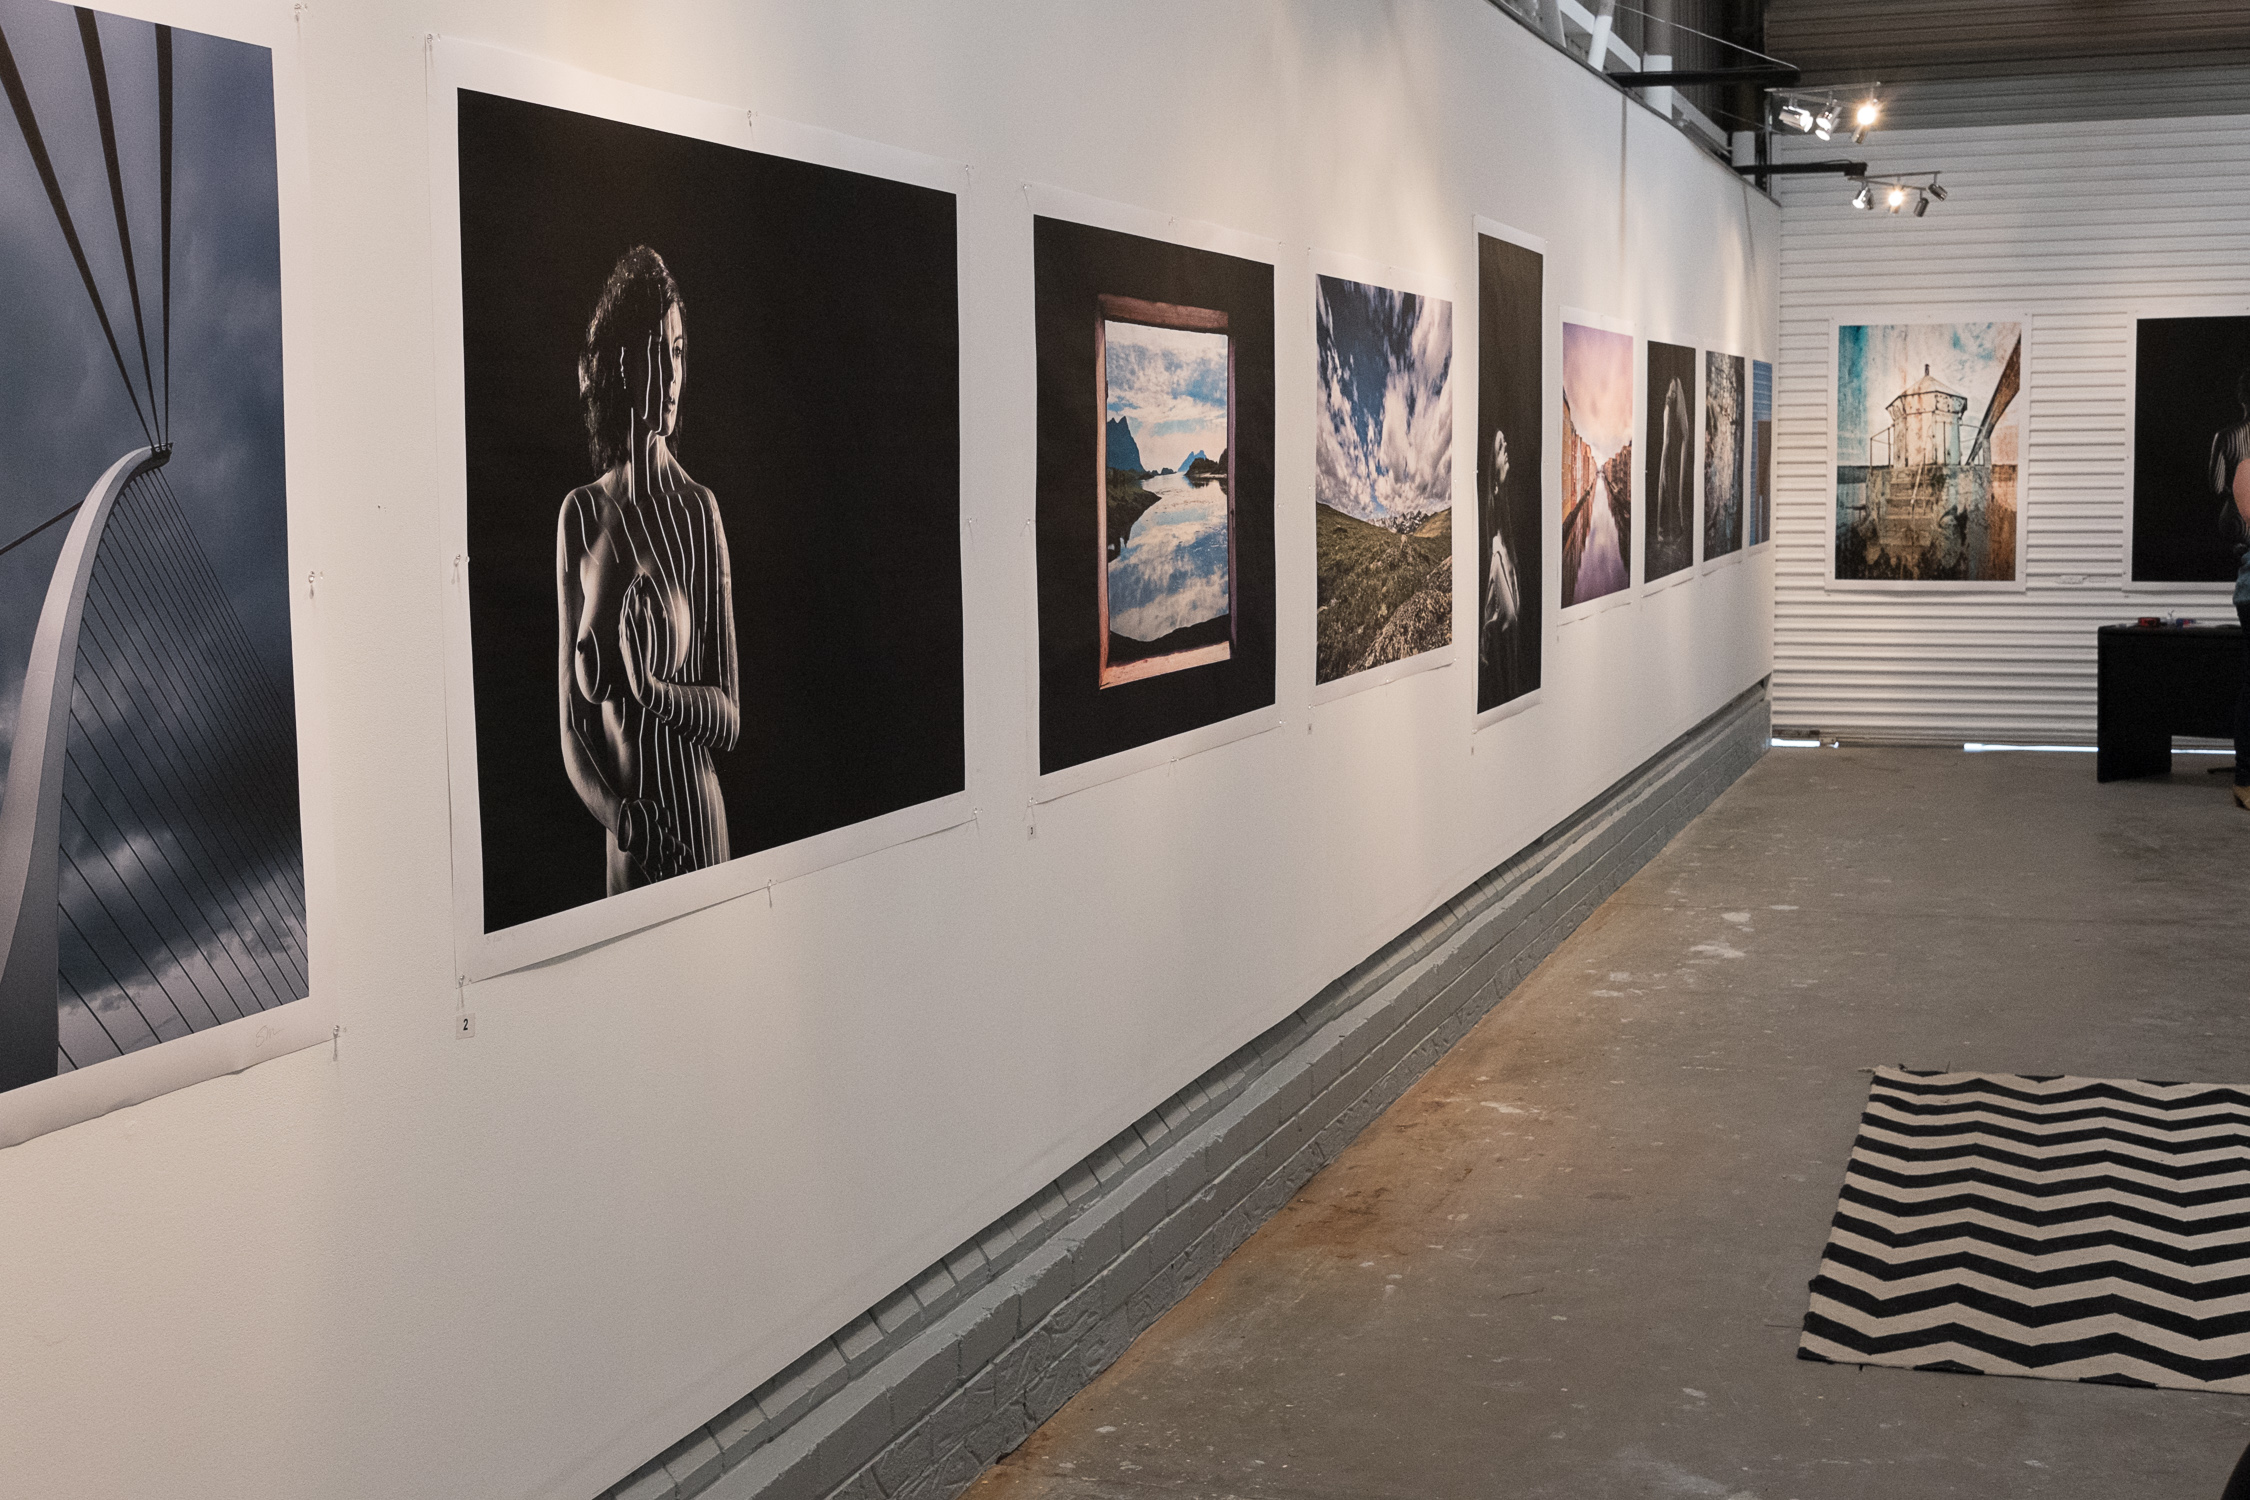 Installation view gallery 2017